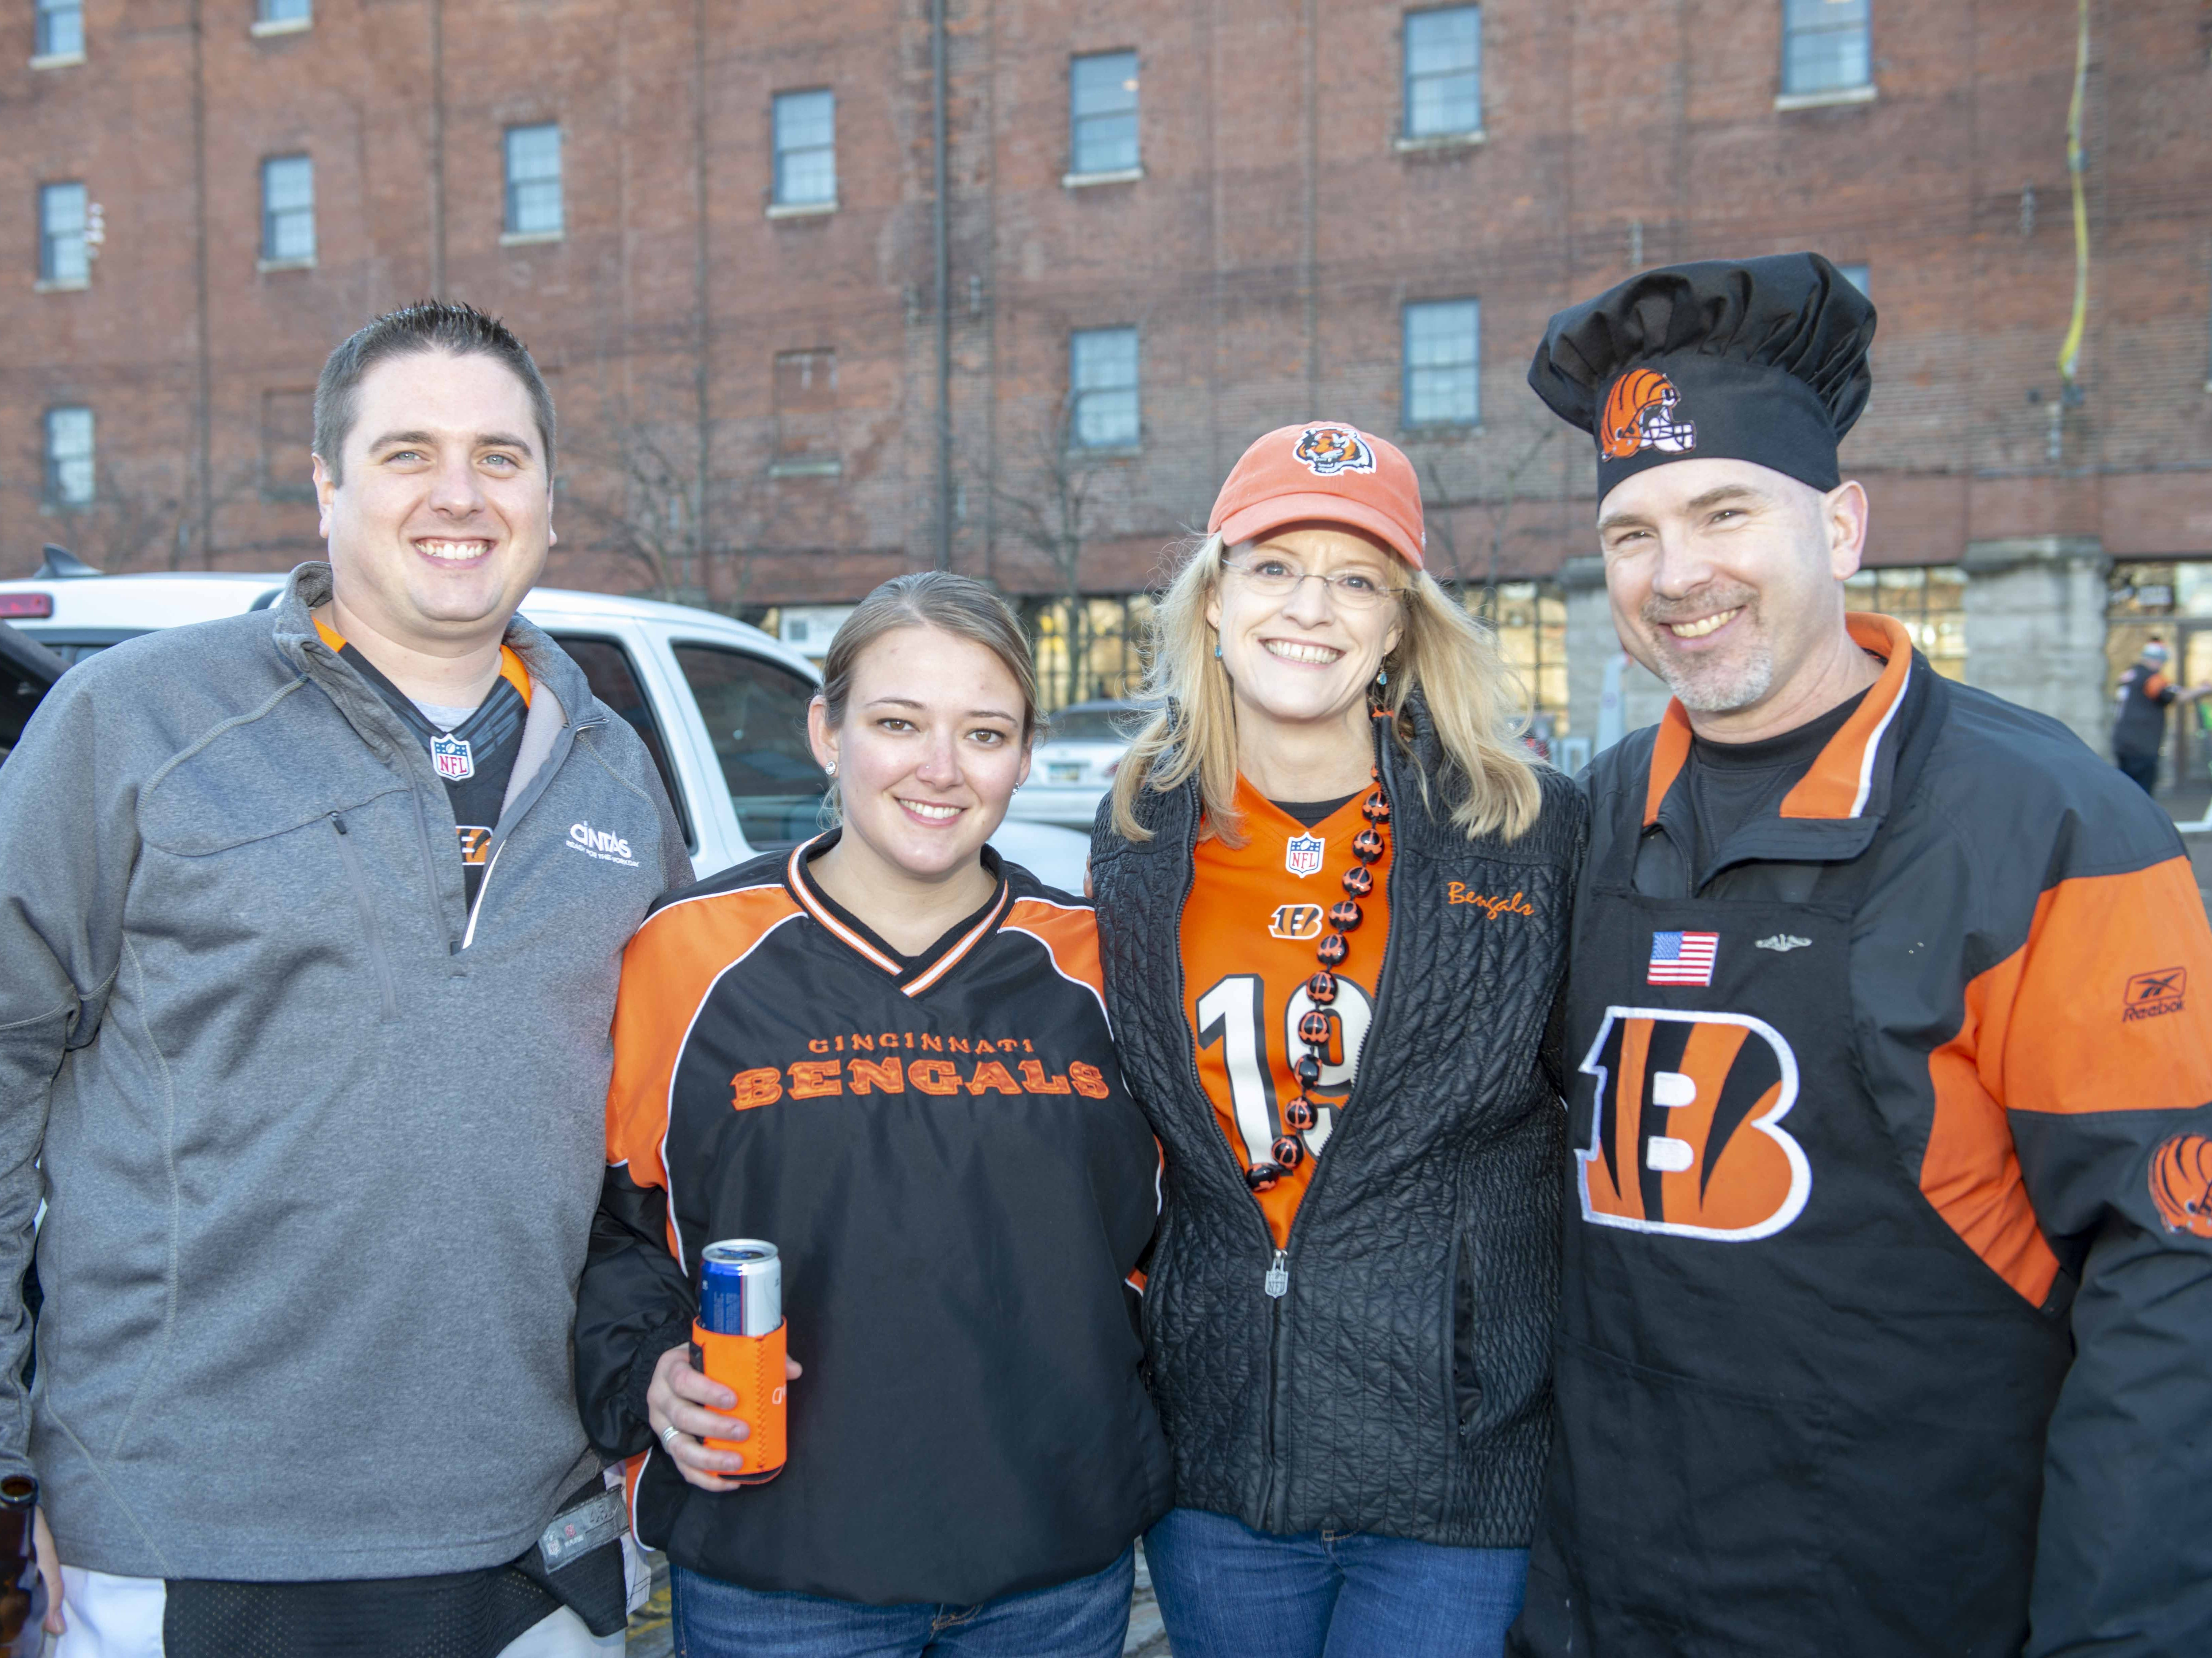 Cincinnati Bengals fans showed up for tailgating parties as the Cincinnati Bengals hosted the Denver Broncos at Paul Brown Stadium Sunday, December 2, 2018. Jonathan and Katelyn Sotten of Hamilton and Wendy and Ken Adams of West Price Hill.